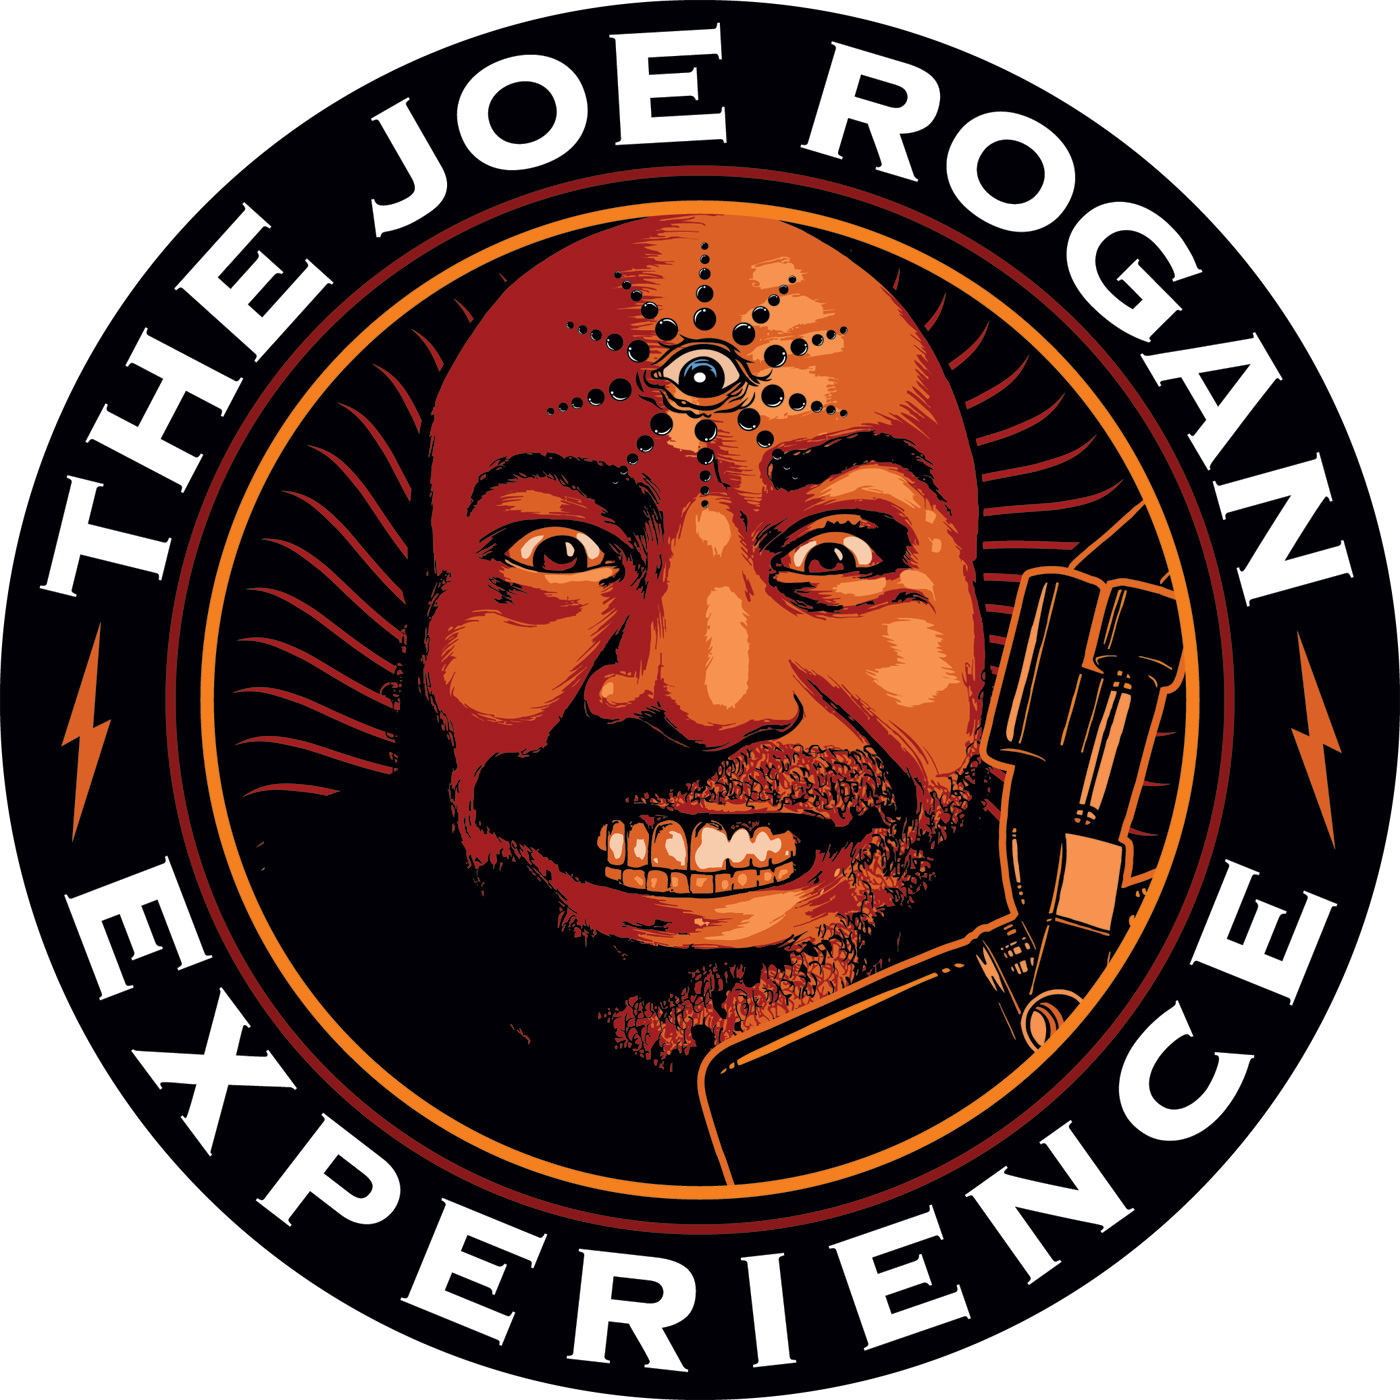 The Joe Rogan Experience PODCAST #92 - Jim Norton, Brian Redban